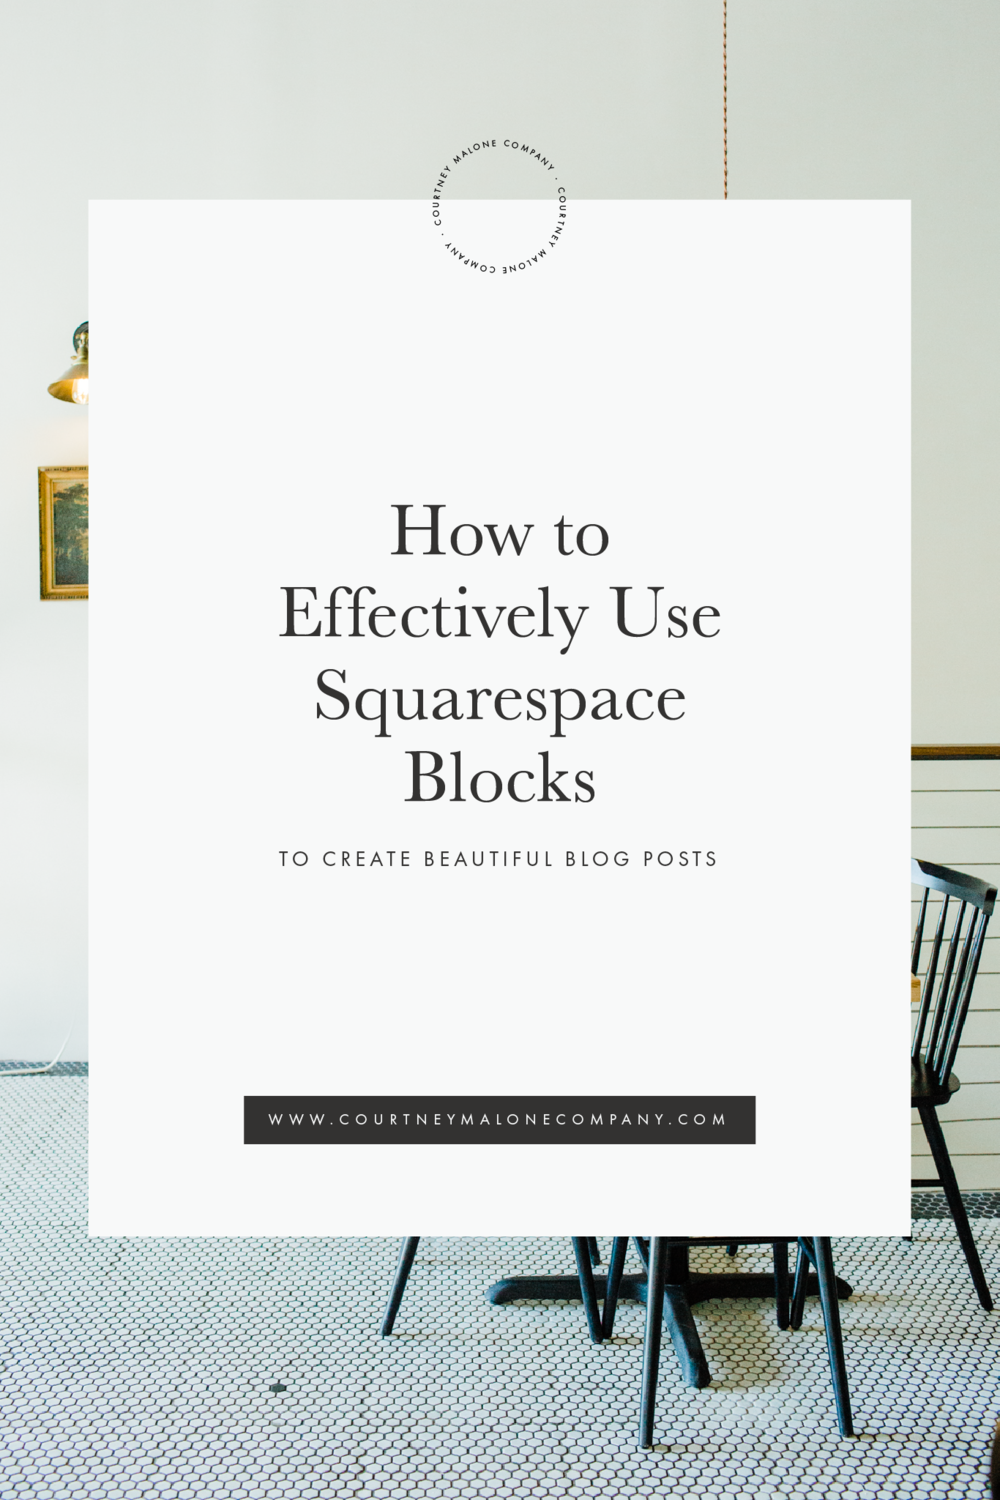 How to Effectively Use Squarespace Blocks to Create Beautiful Blog Posts